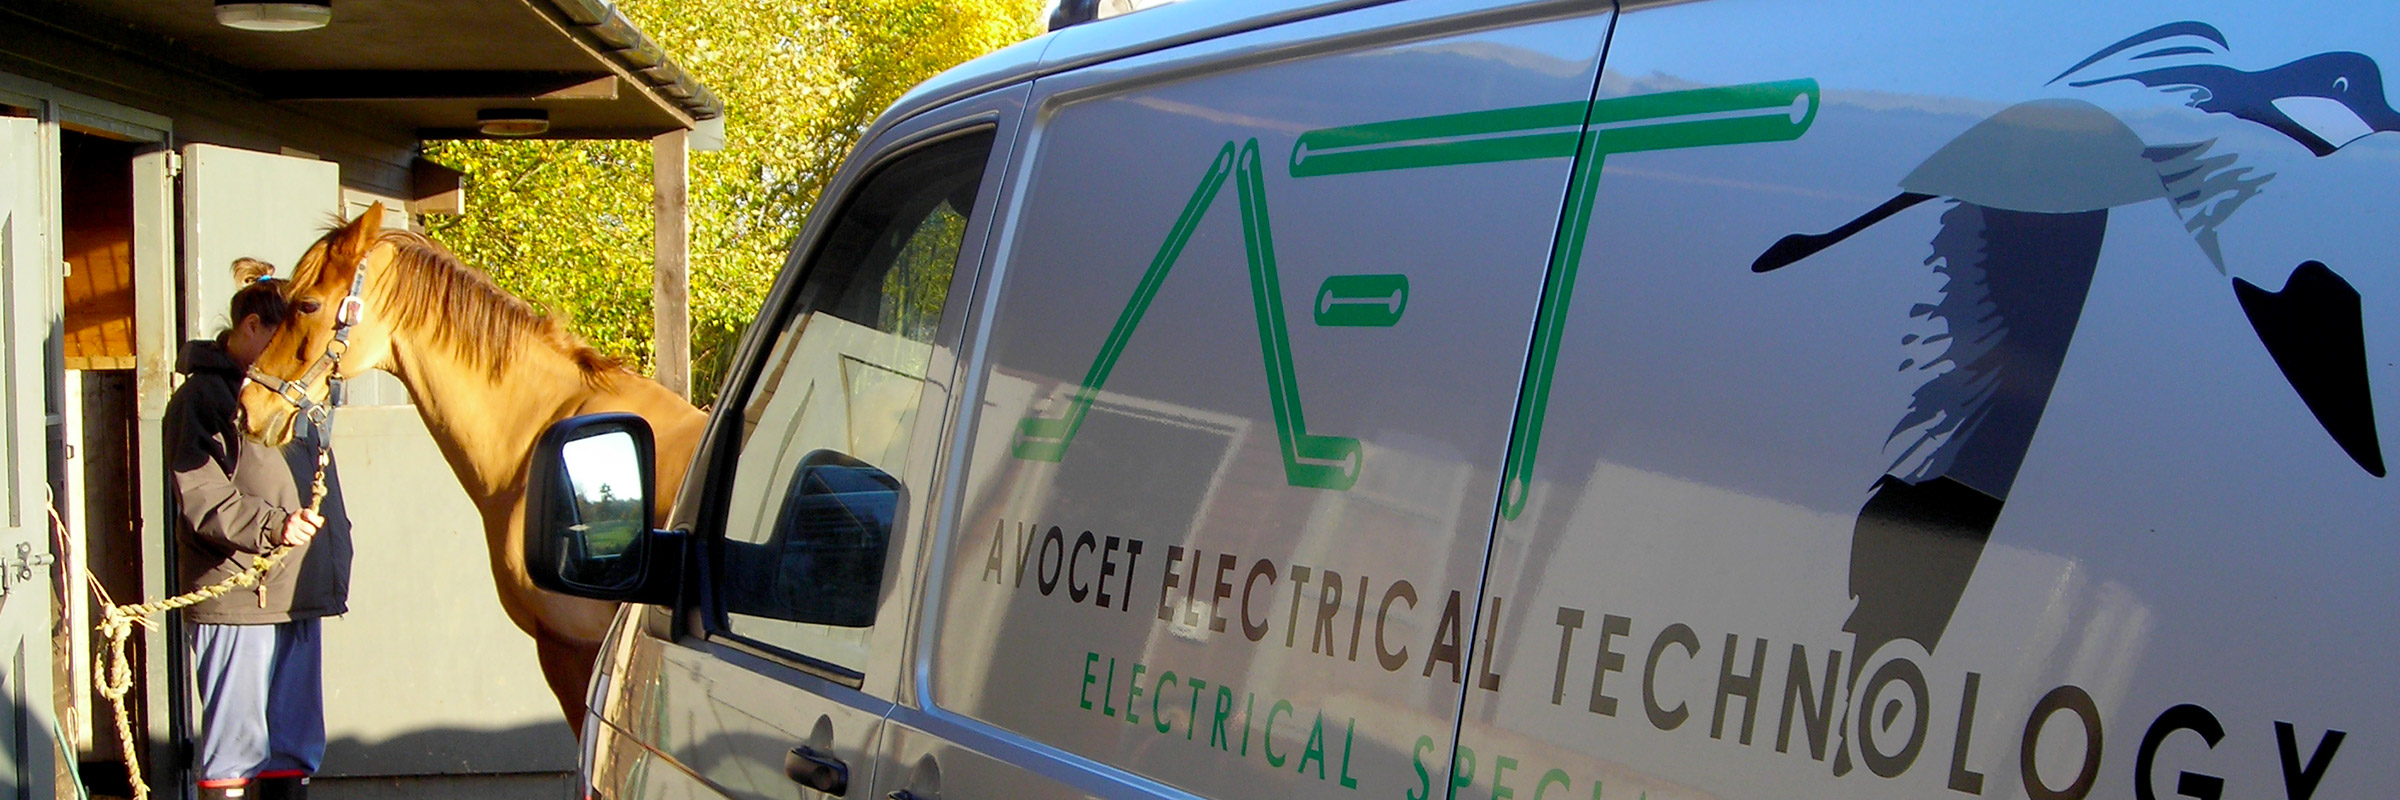 Avocet Electrical-NIC EIC Registered-Electricians-Newmarket-Suffolk